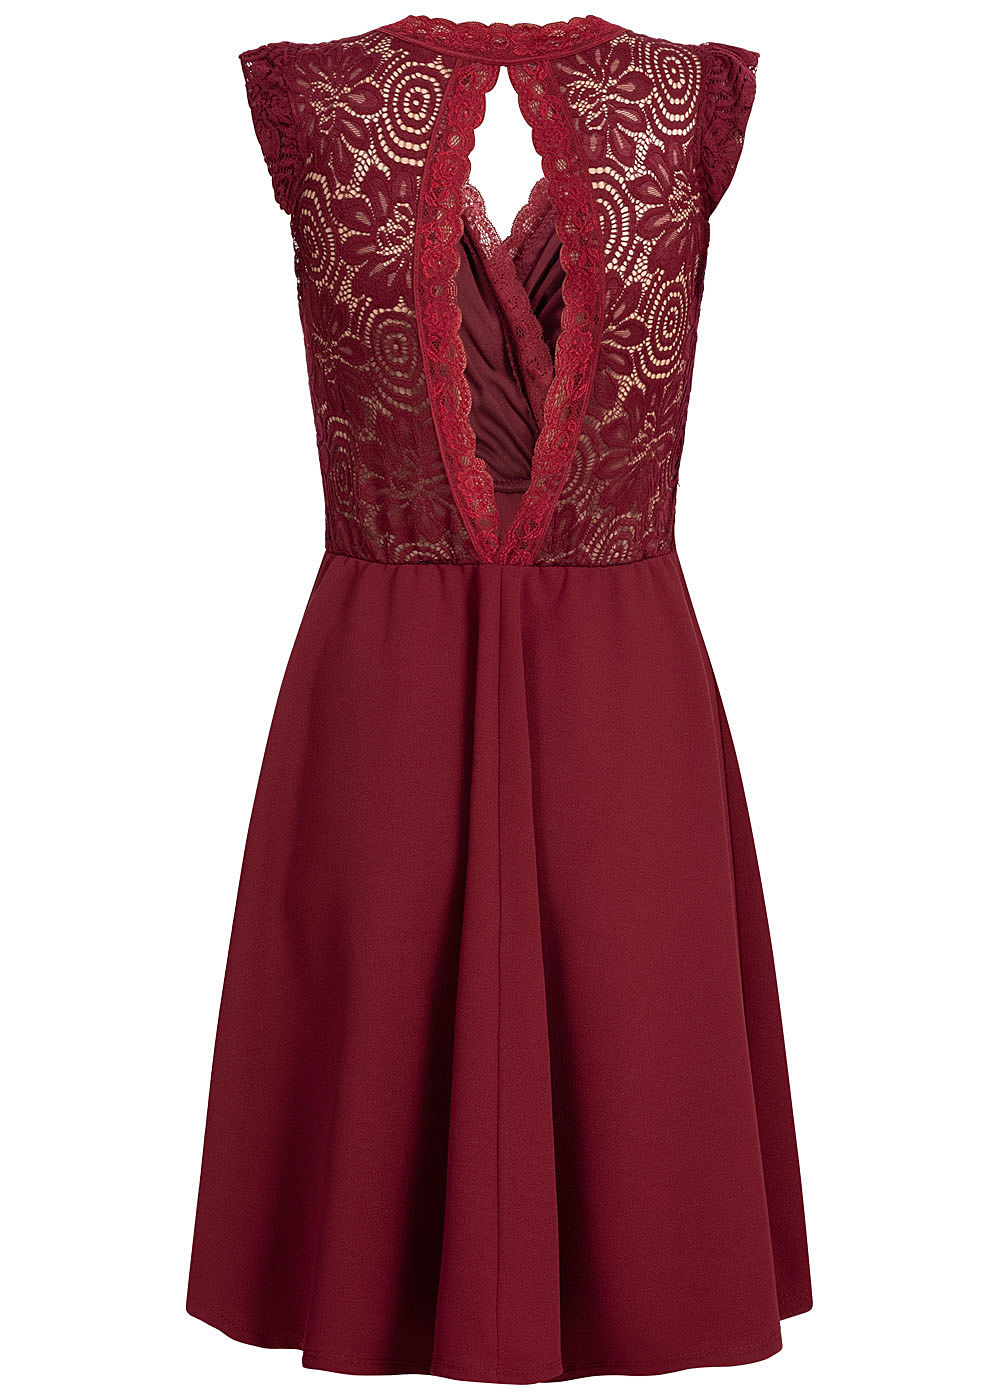 Styleboom Fashion Damen Mini Kleid Spitzen Details Brustpads bordeaux rot